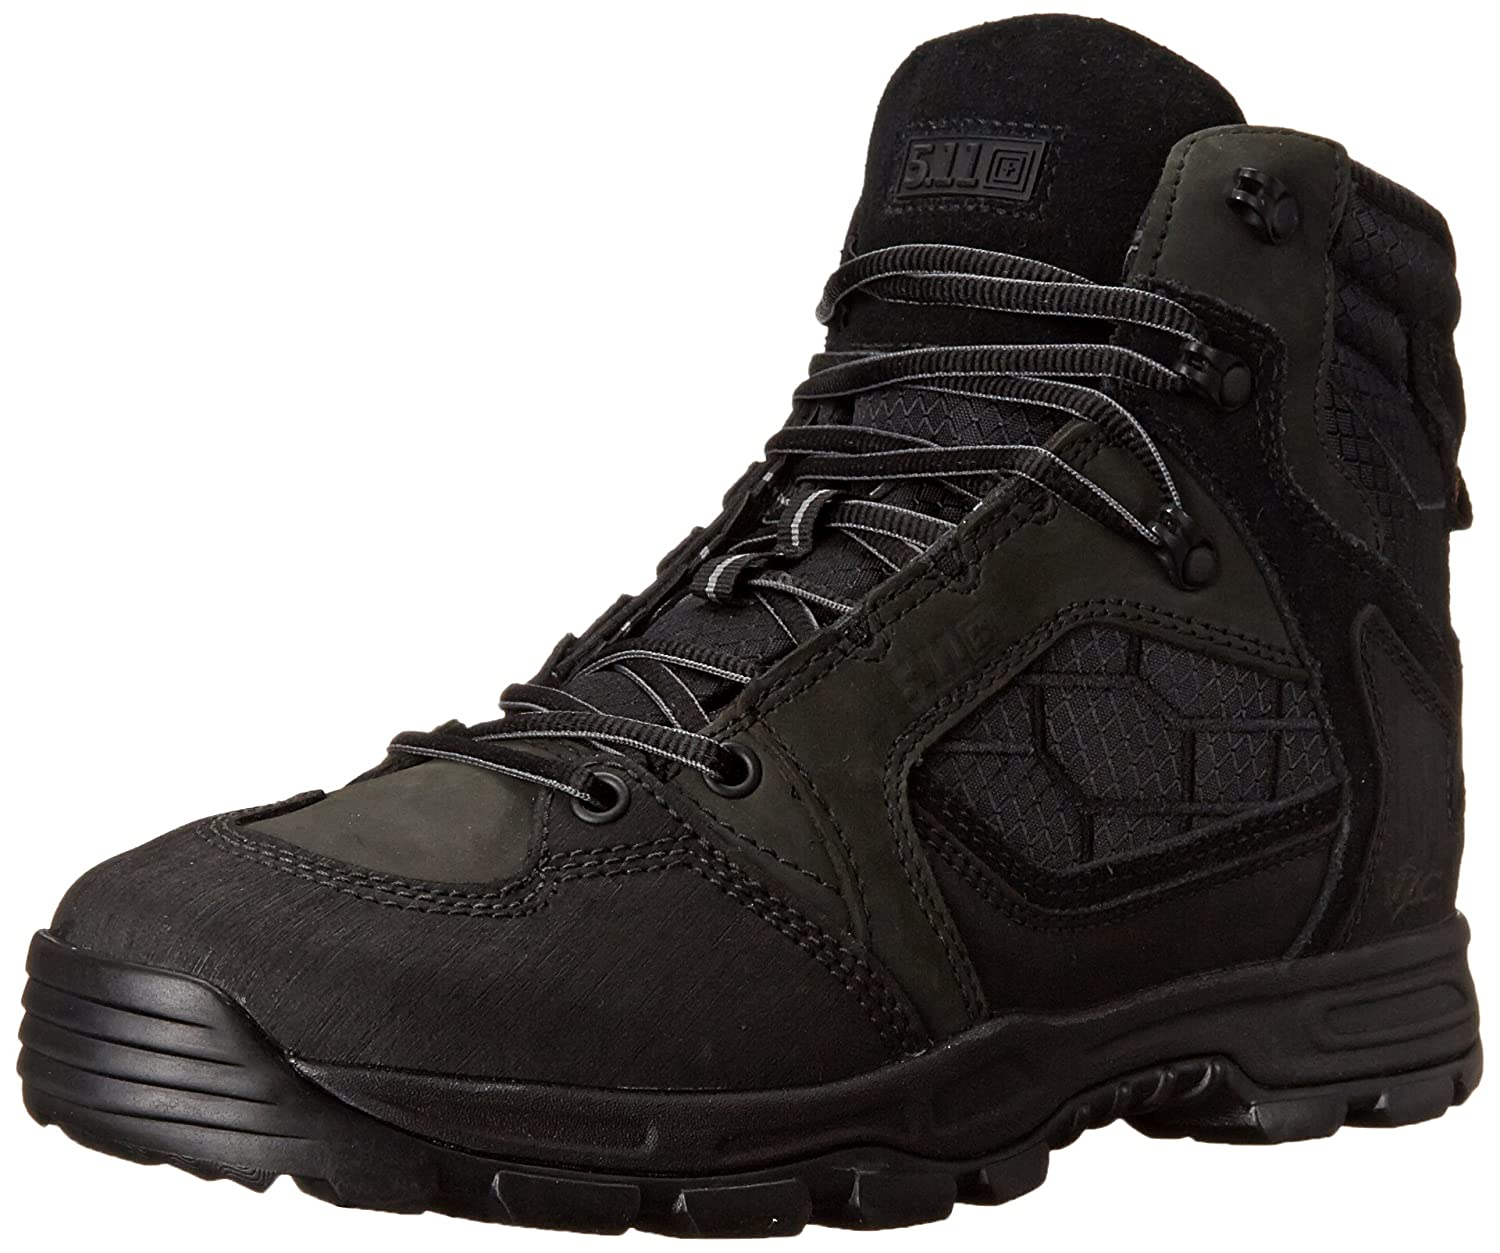 5.11 - 12302 Men's XPRT 2.0 Urban Tactical Boot